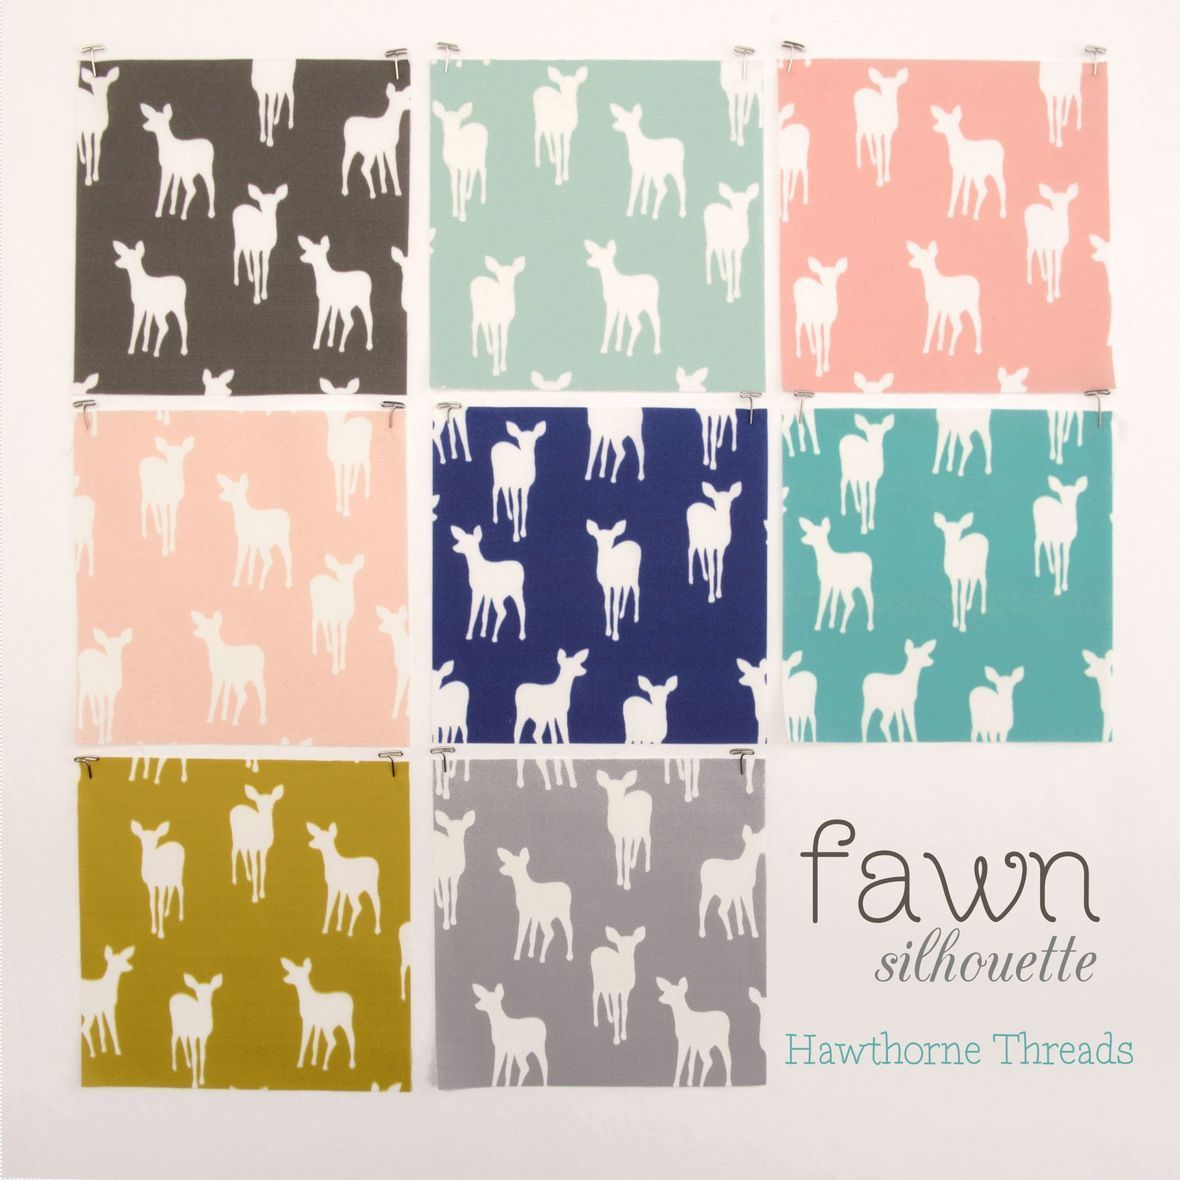 Fawn Silhouette Fabric - Copy